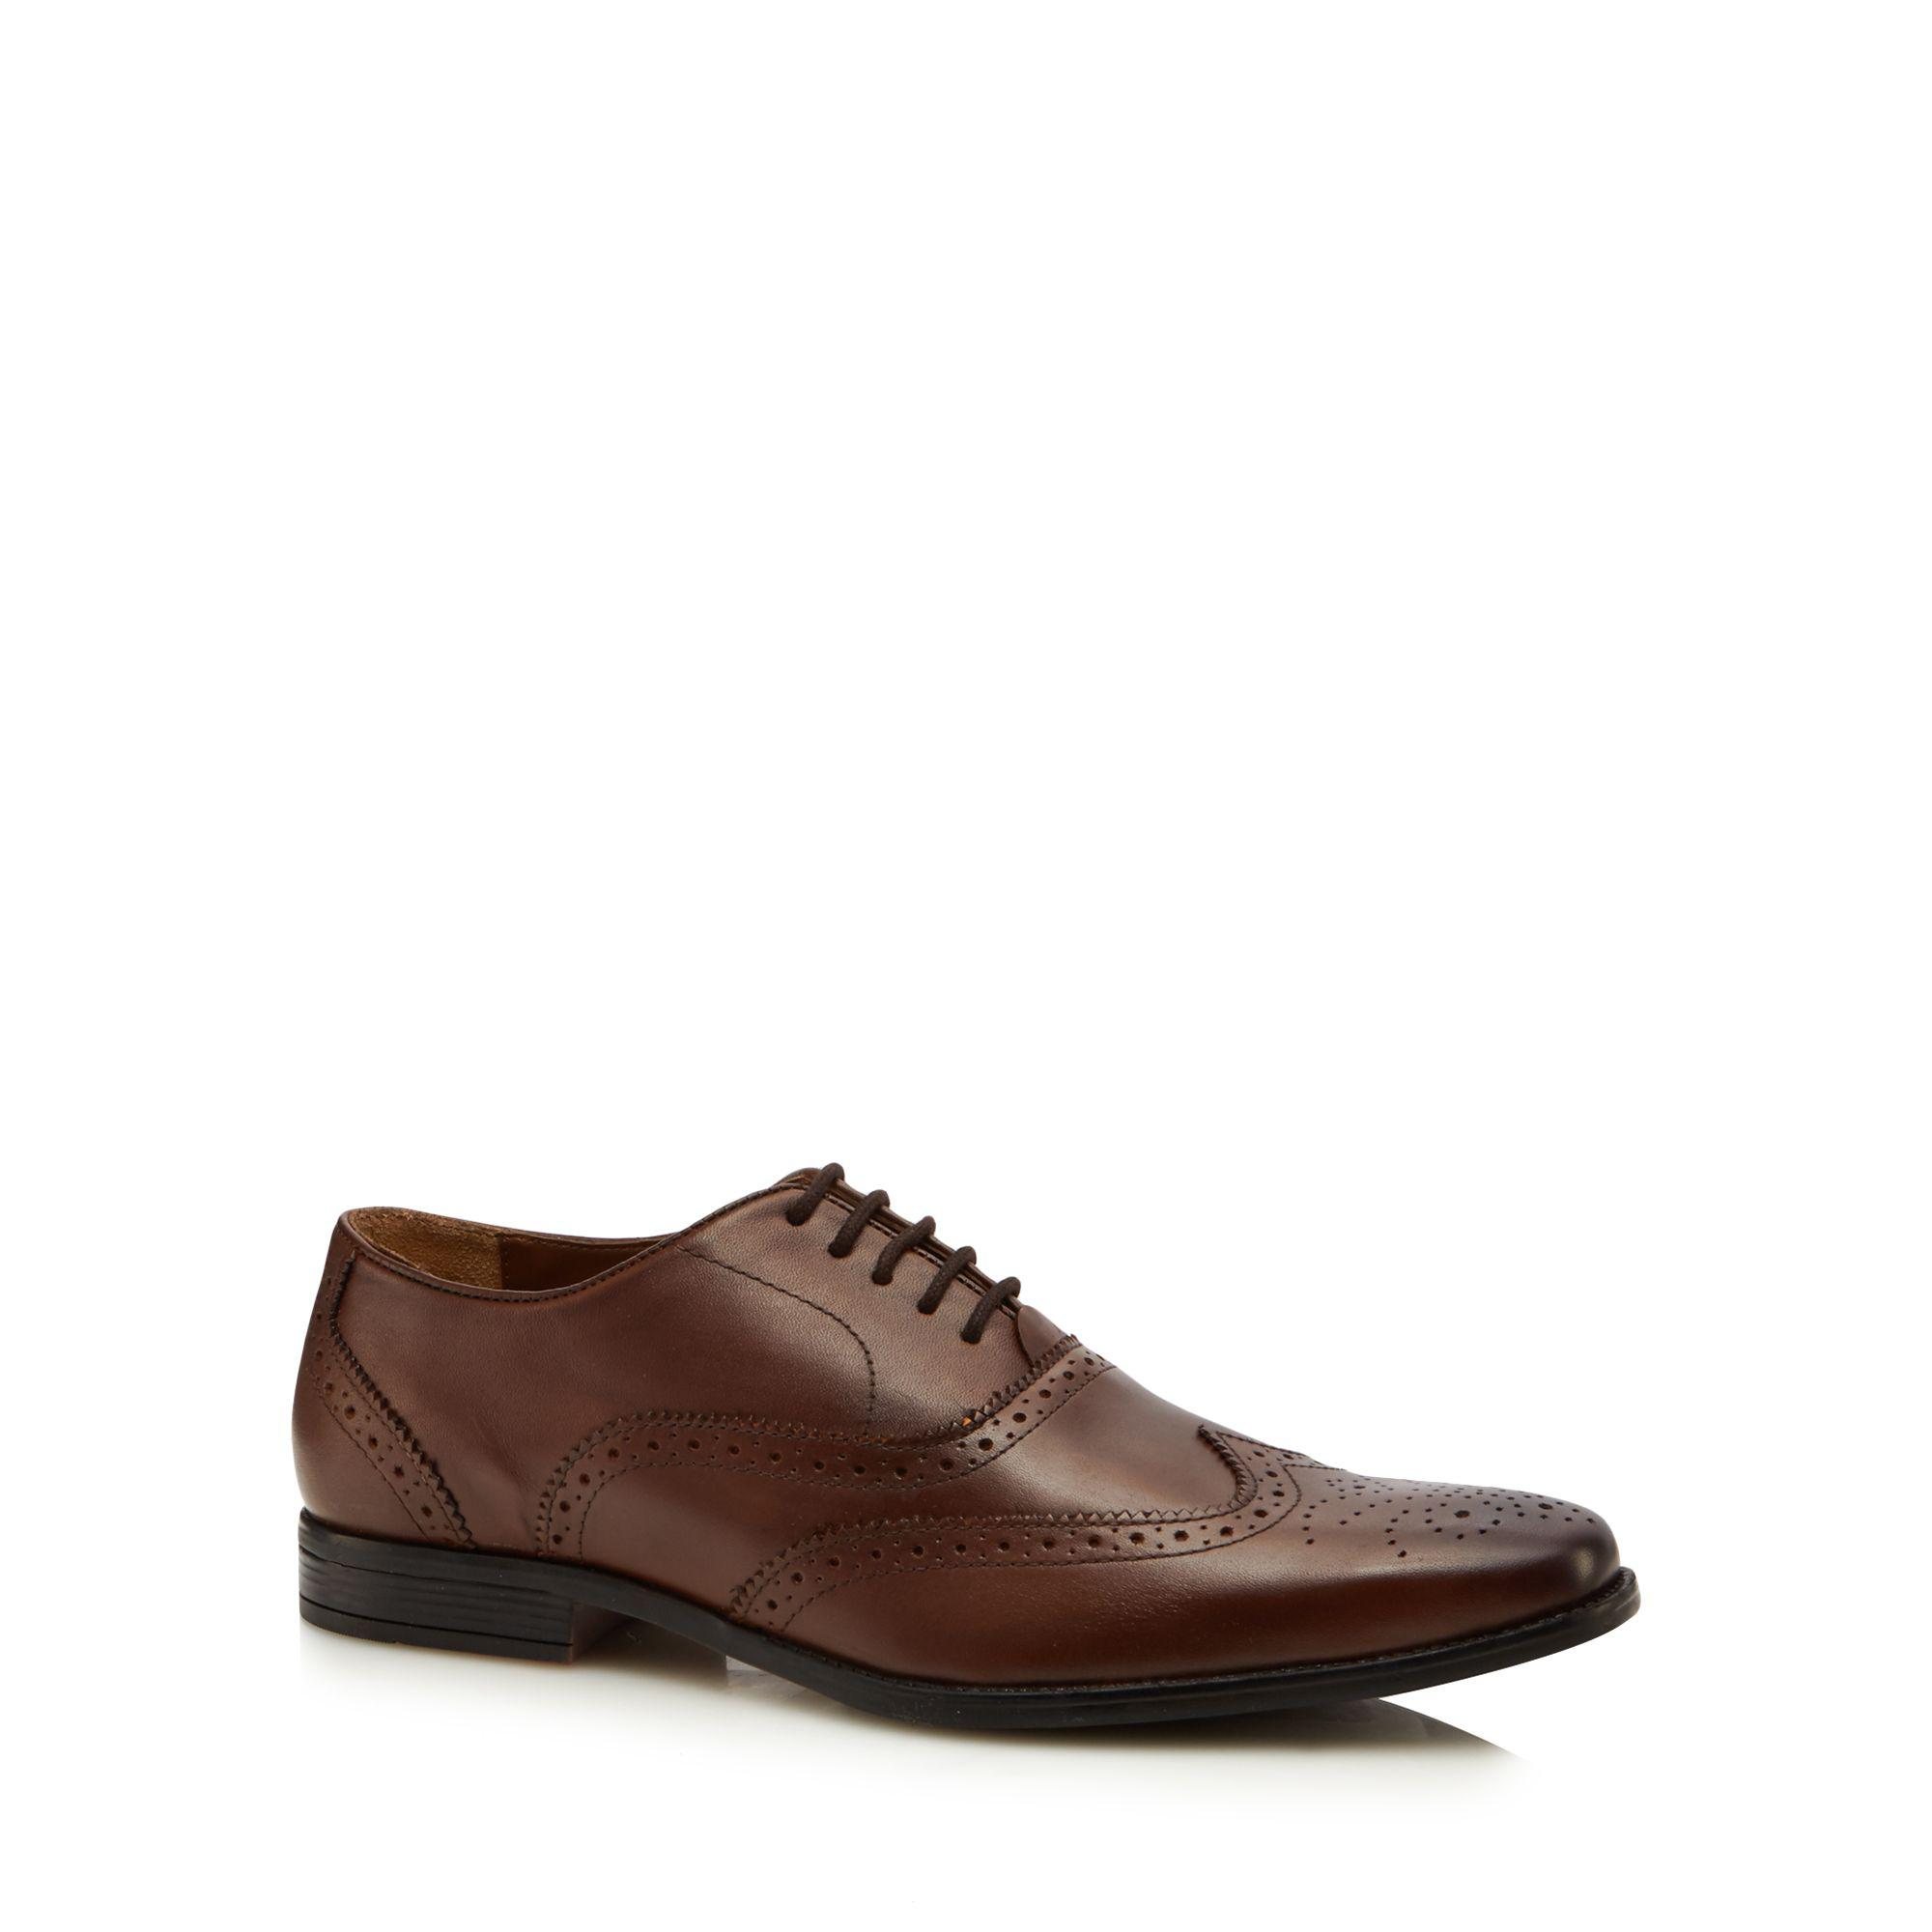 Brown leather 'Bishop' Derby shoes outlet for sale discount price xSp3rWG7